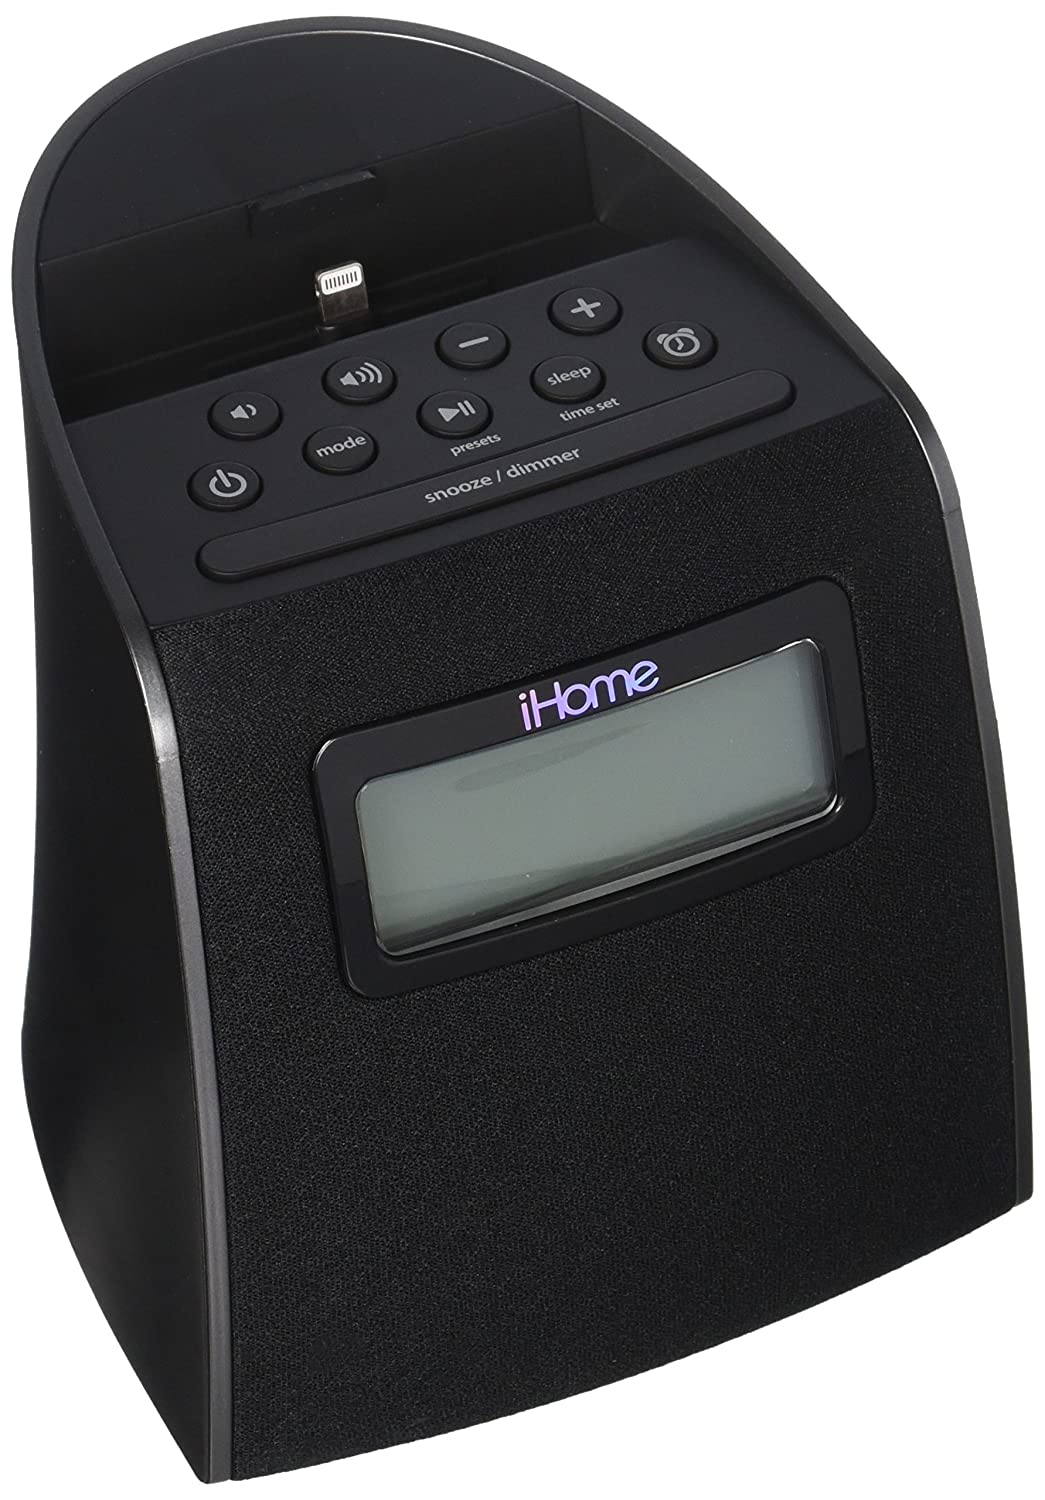 iHOME IPL22G iPhone/iPod Clock Radio with Lightning Connector (Black)